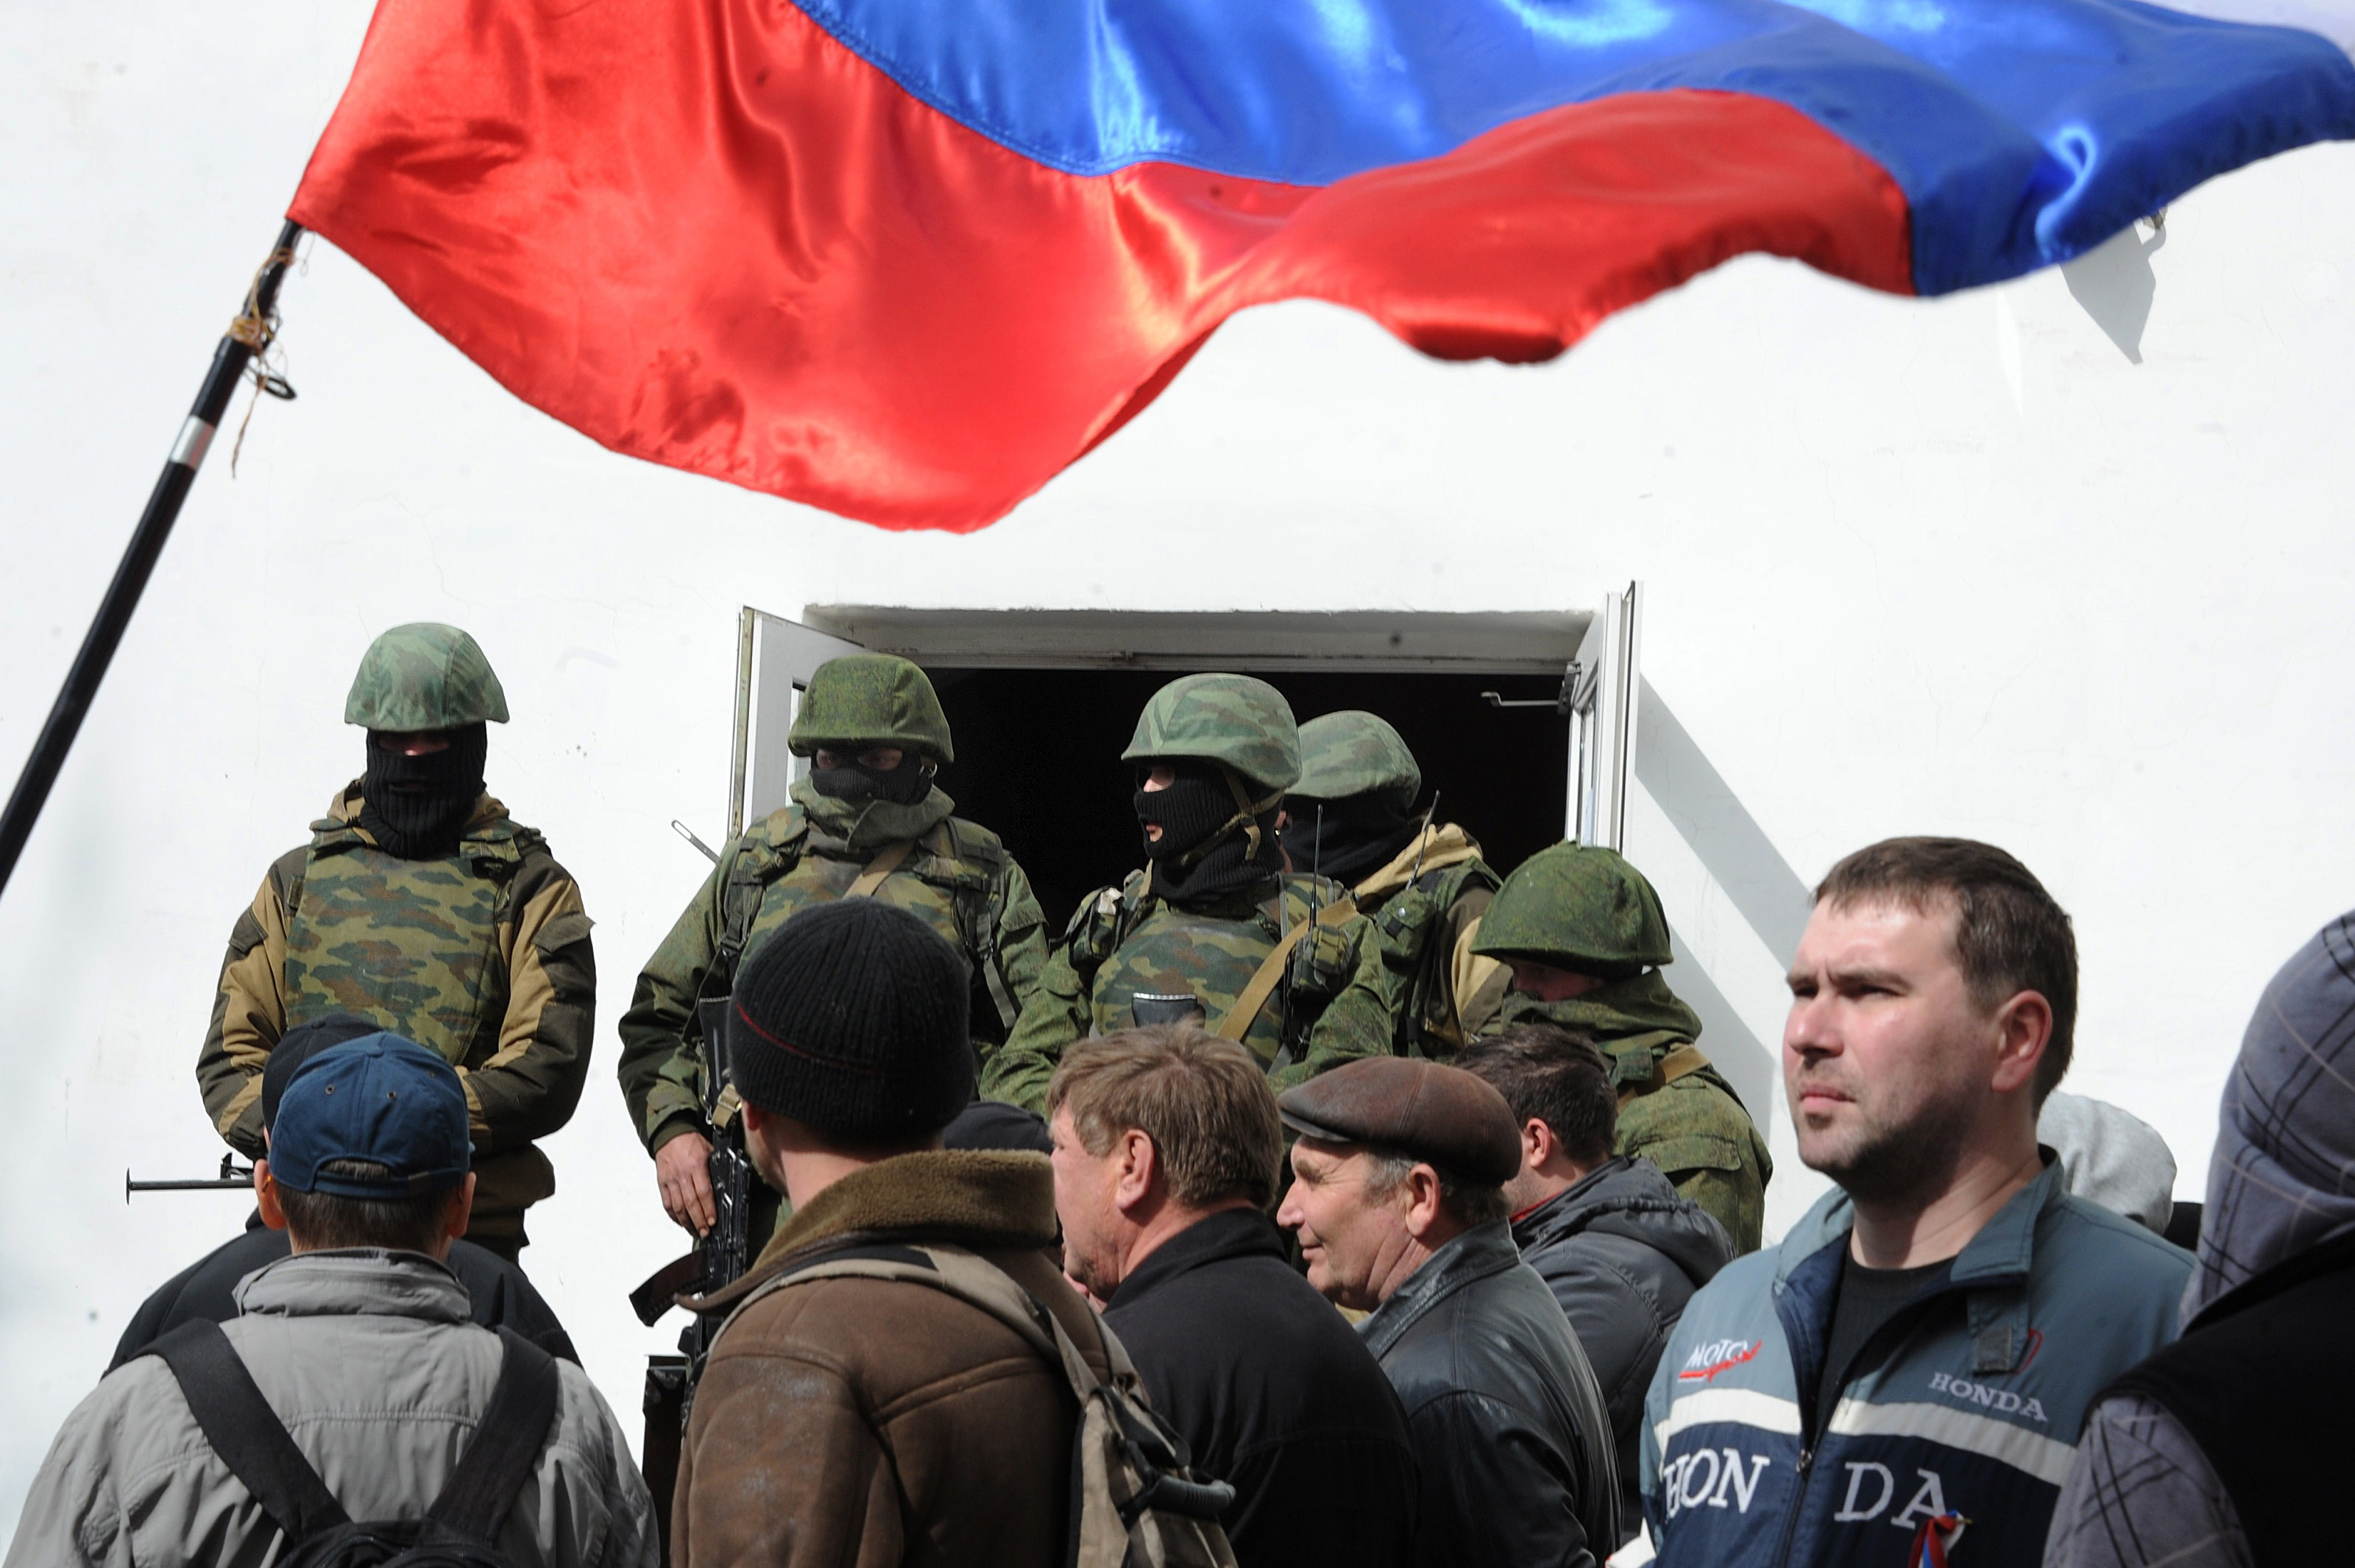 Russian soldiers and pro-Russian self-defence activists patrol at the Ukrainian navy headquarters in the Crimean city of Sevastopol on March 19, 2014.